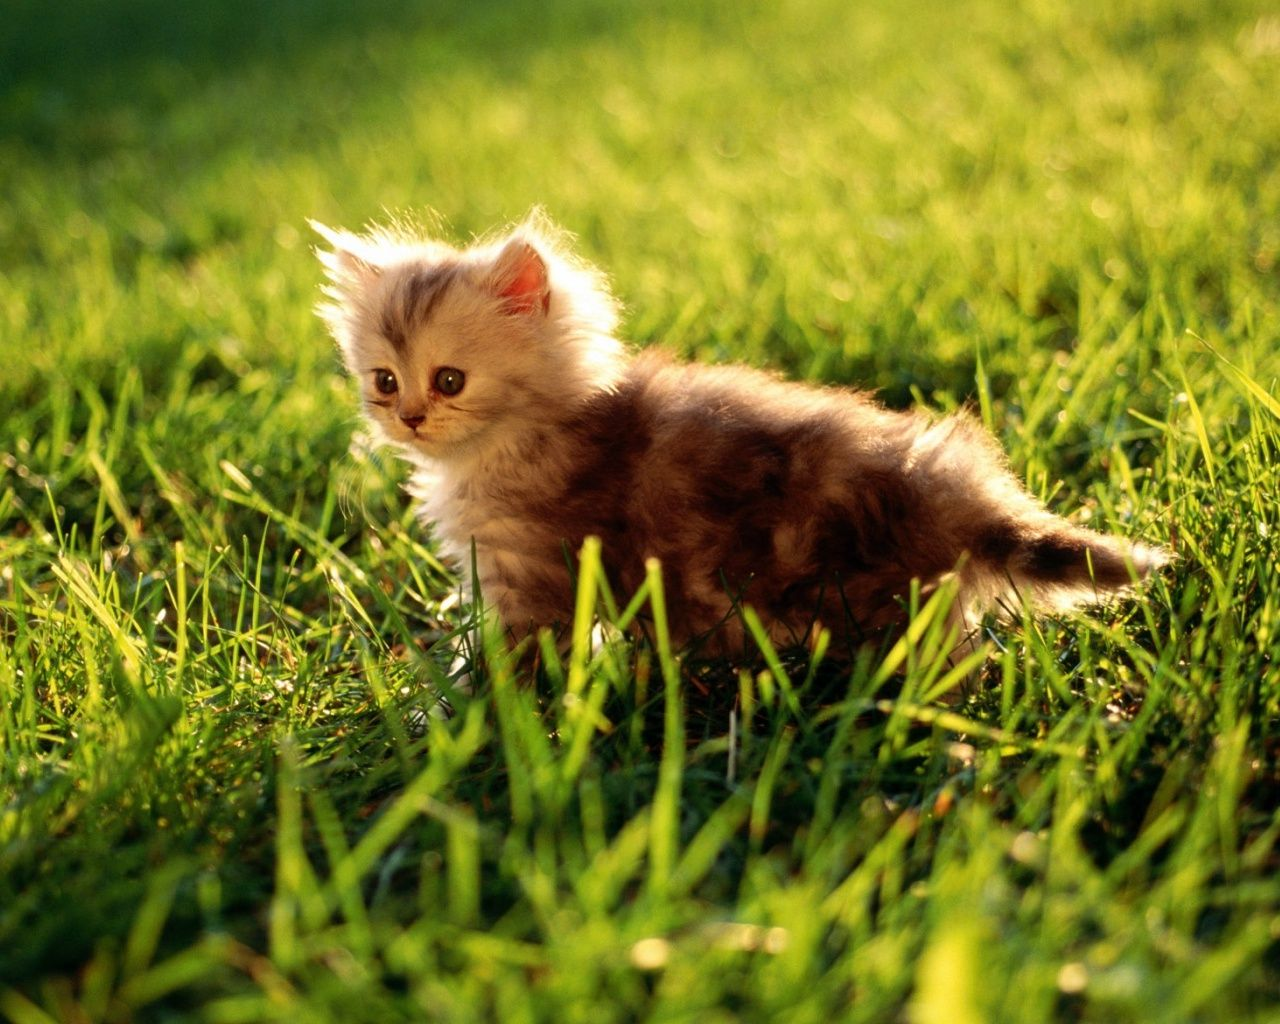 kittens in grass - google search | awwwwww <3 | pinterest